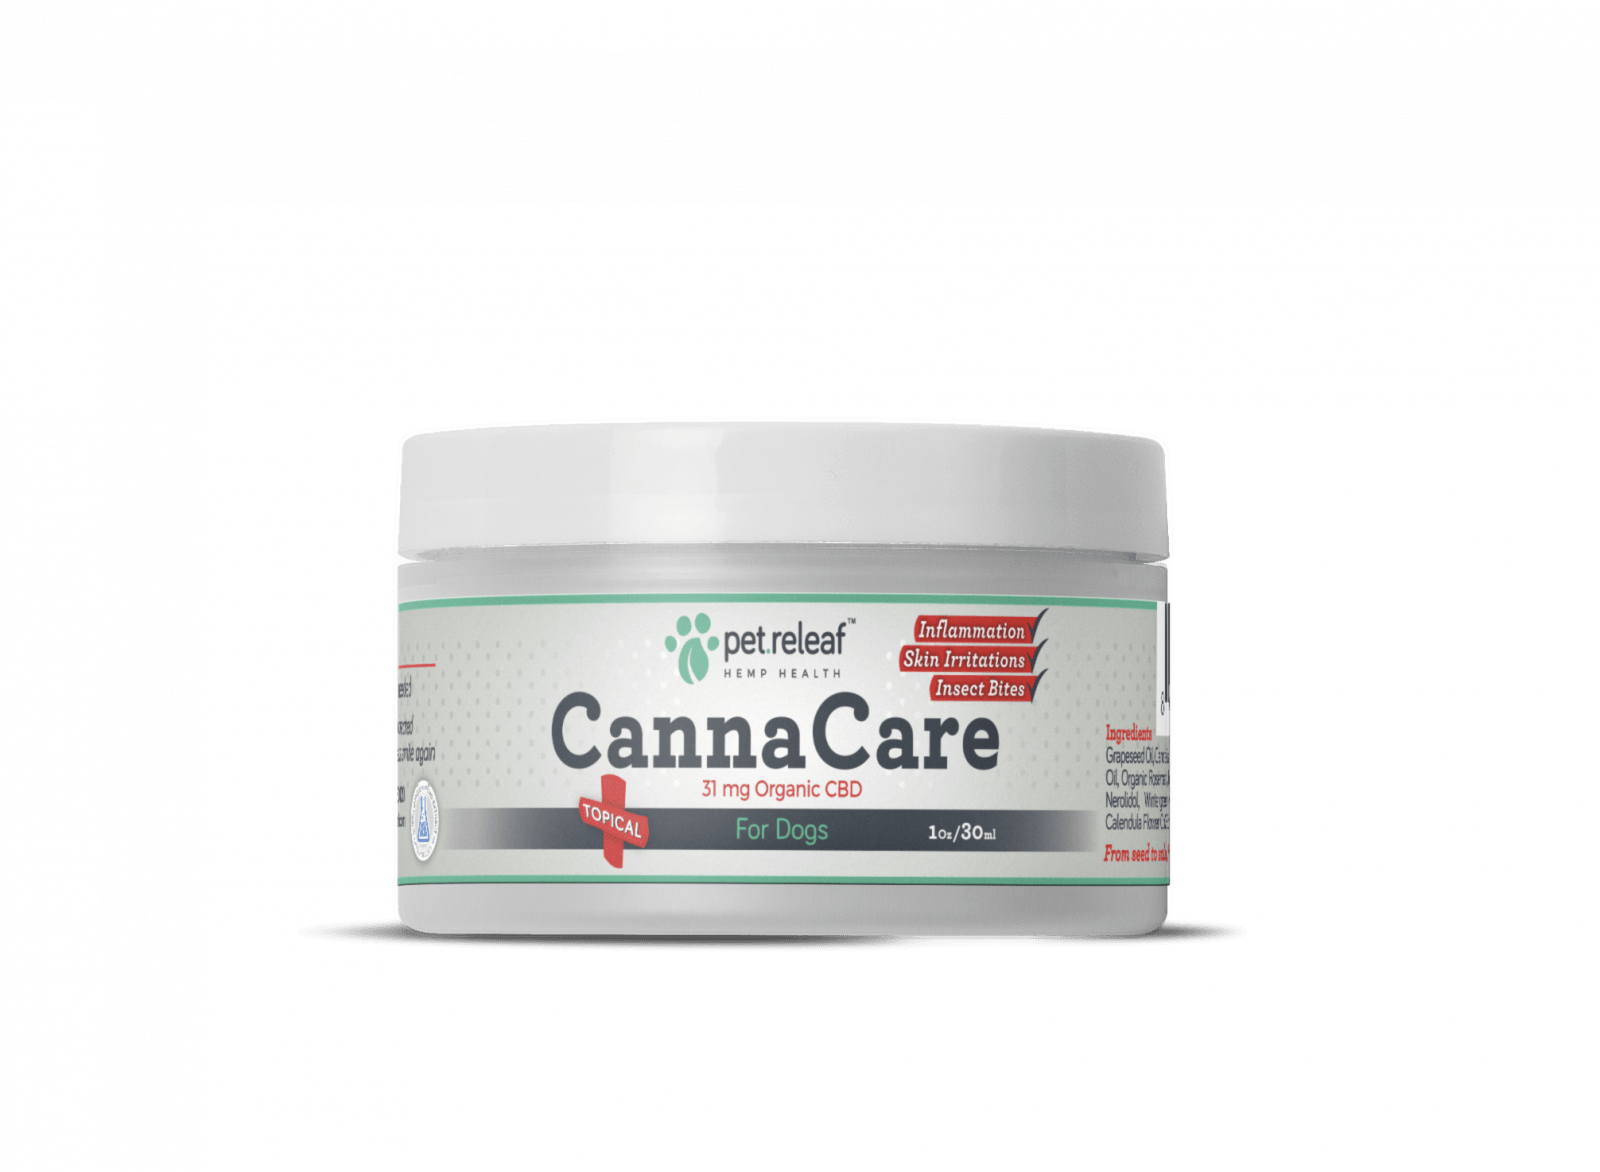 Pet Releaf Canna Care Topical treatment for dogs